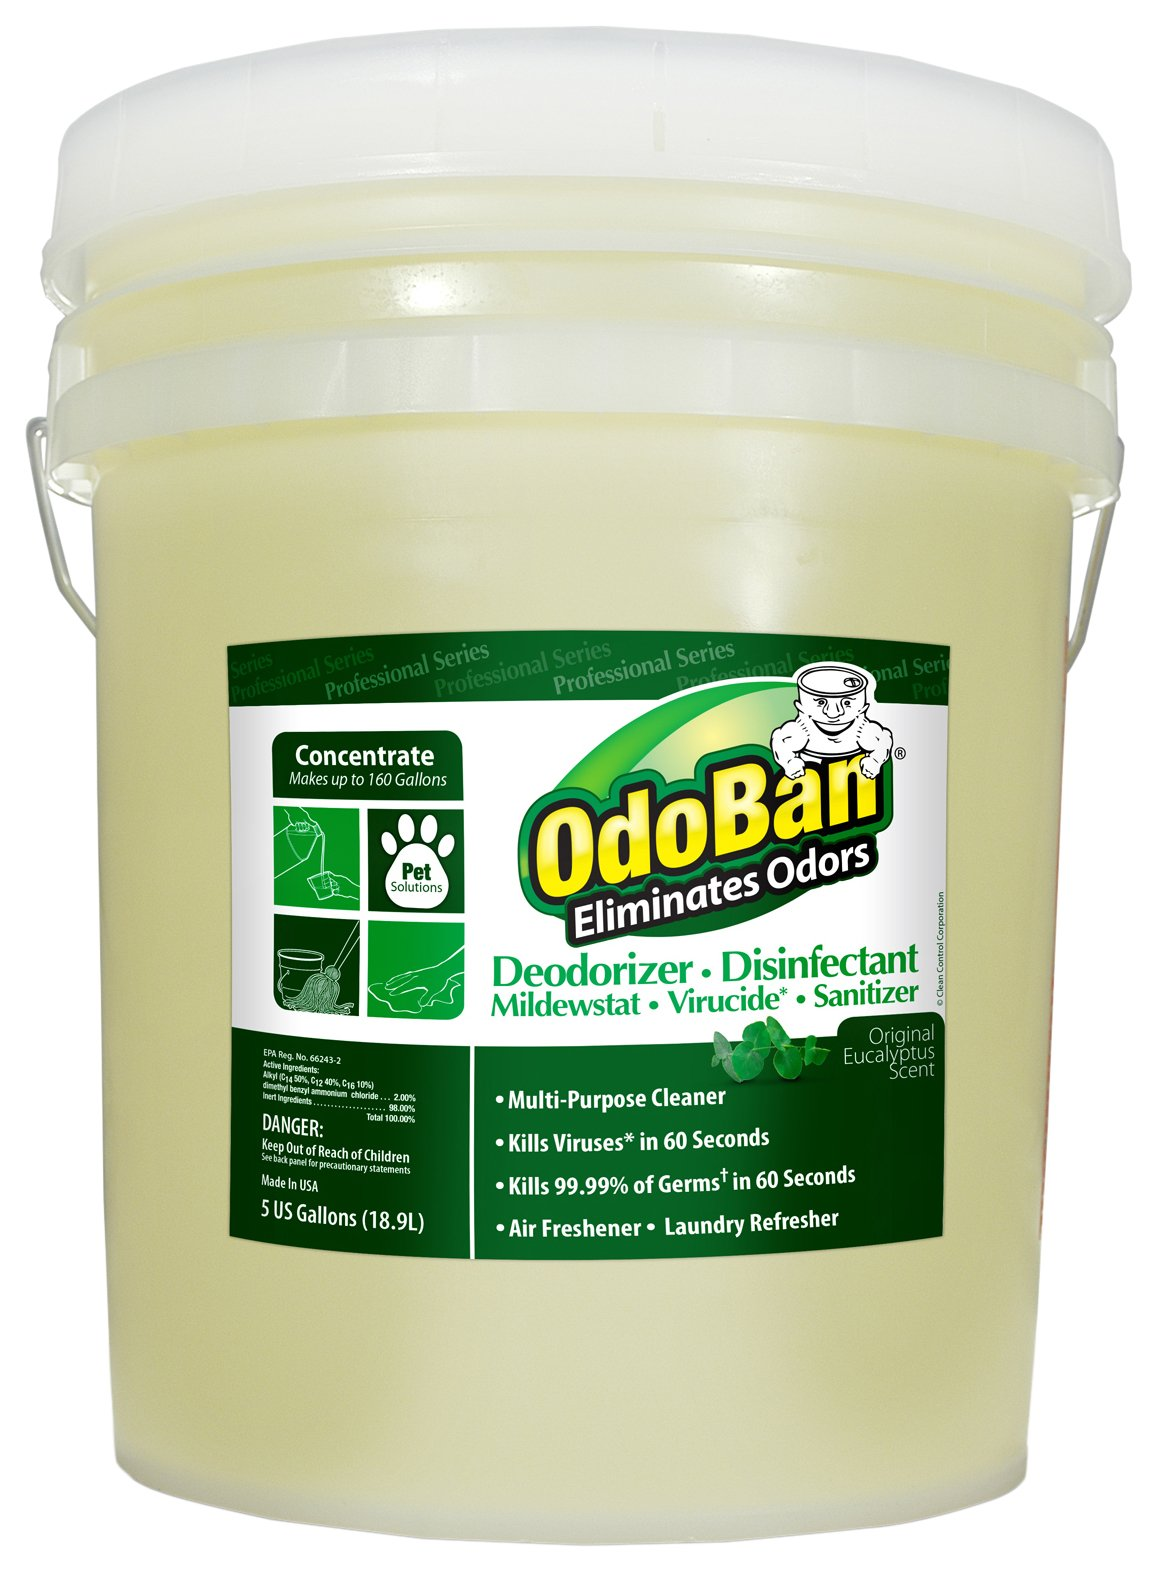 OdoBan 911062-5G Concentrate All Purpose Cleaner and Disinfectant Odor Eliminator, Eucalyptus Scent, 5 gal